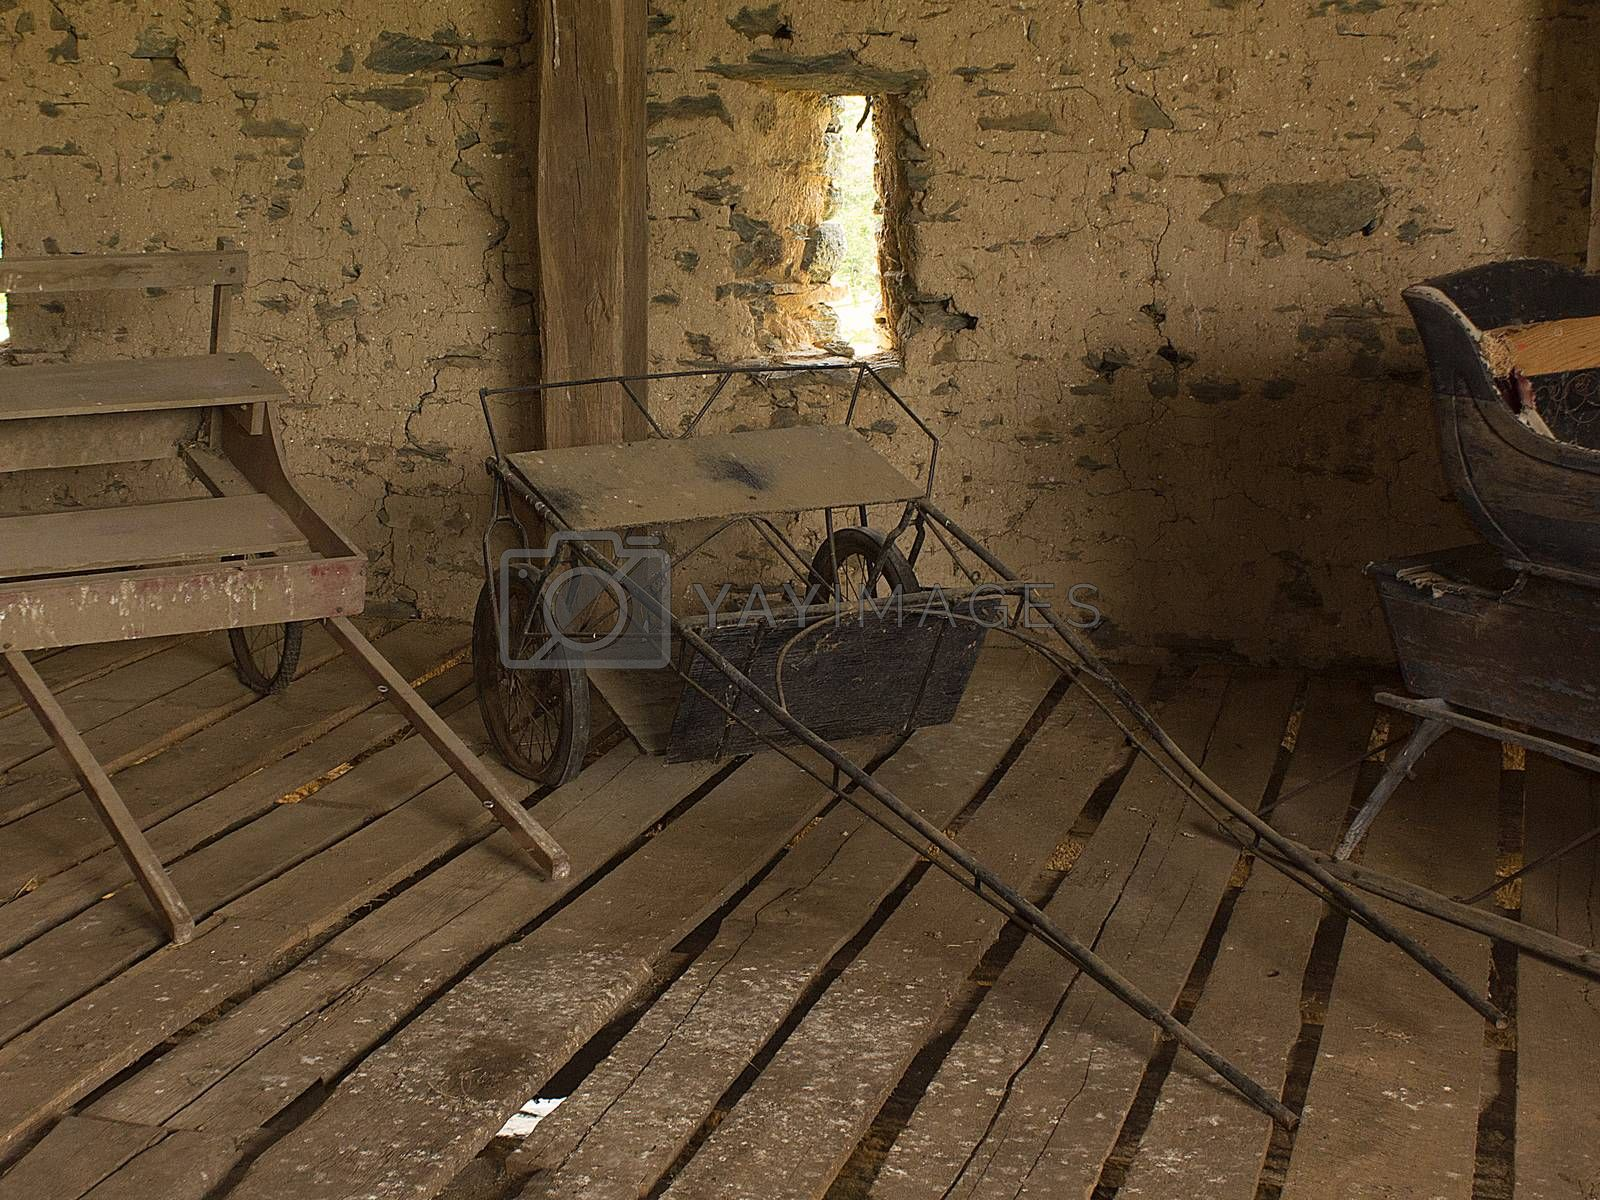 Horse racing sulky sitting in old stone bank  barn